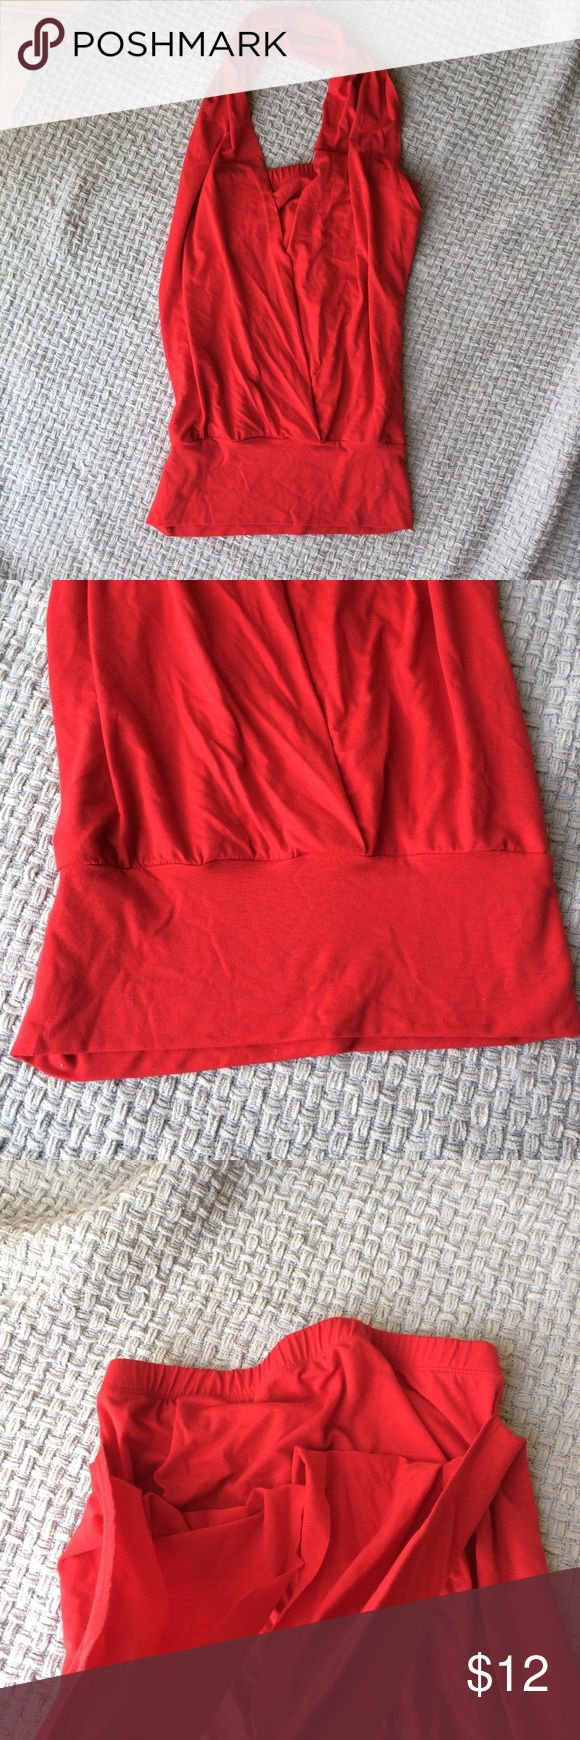 """Stretchy red halter A stretchy knit jersey material gives a nice drape to your silhouette in a true red color (hello sexy black shoes!). The body is a tube top, and then the halter slips over your head. Size xs, tube top portion is 18"""" long Bisou Bisou Tops Blouses"""